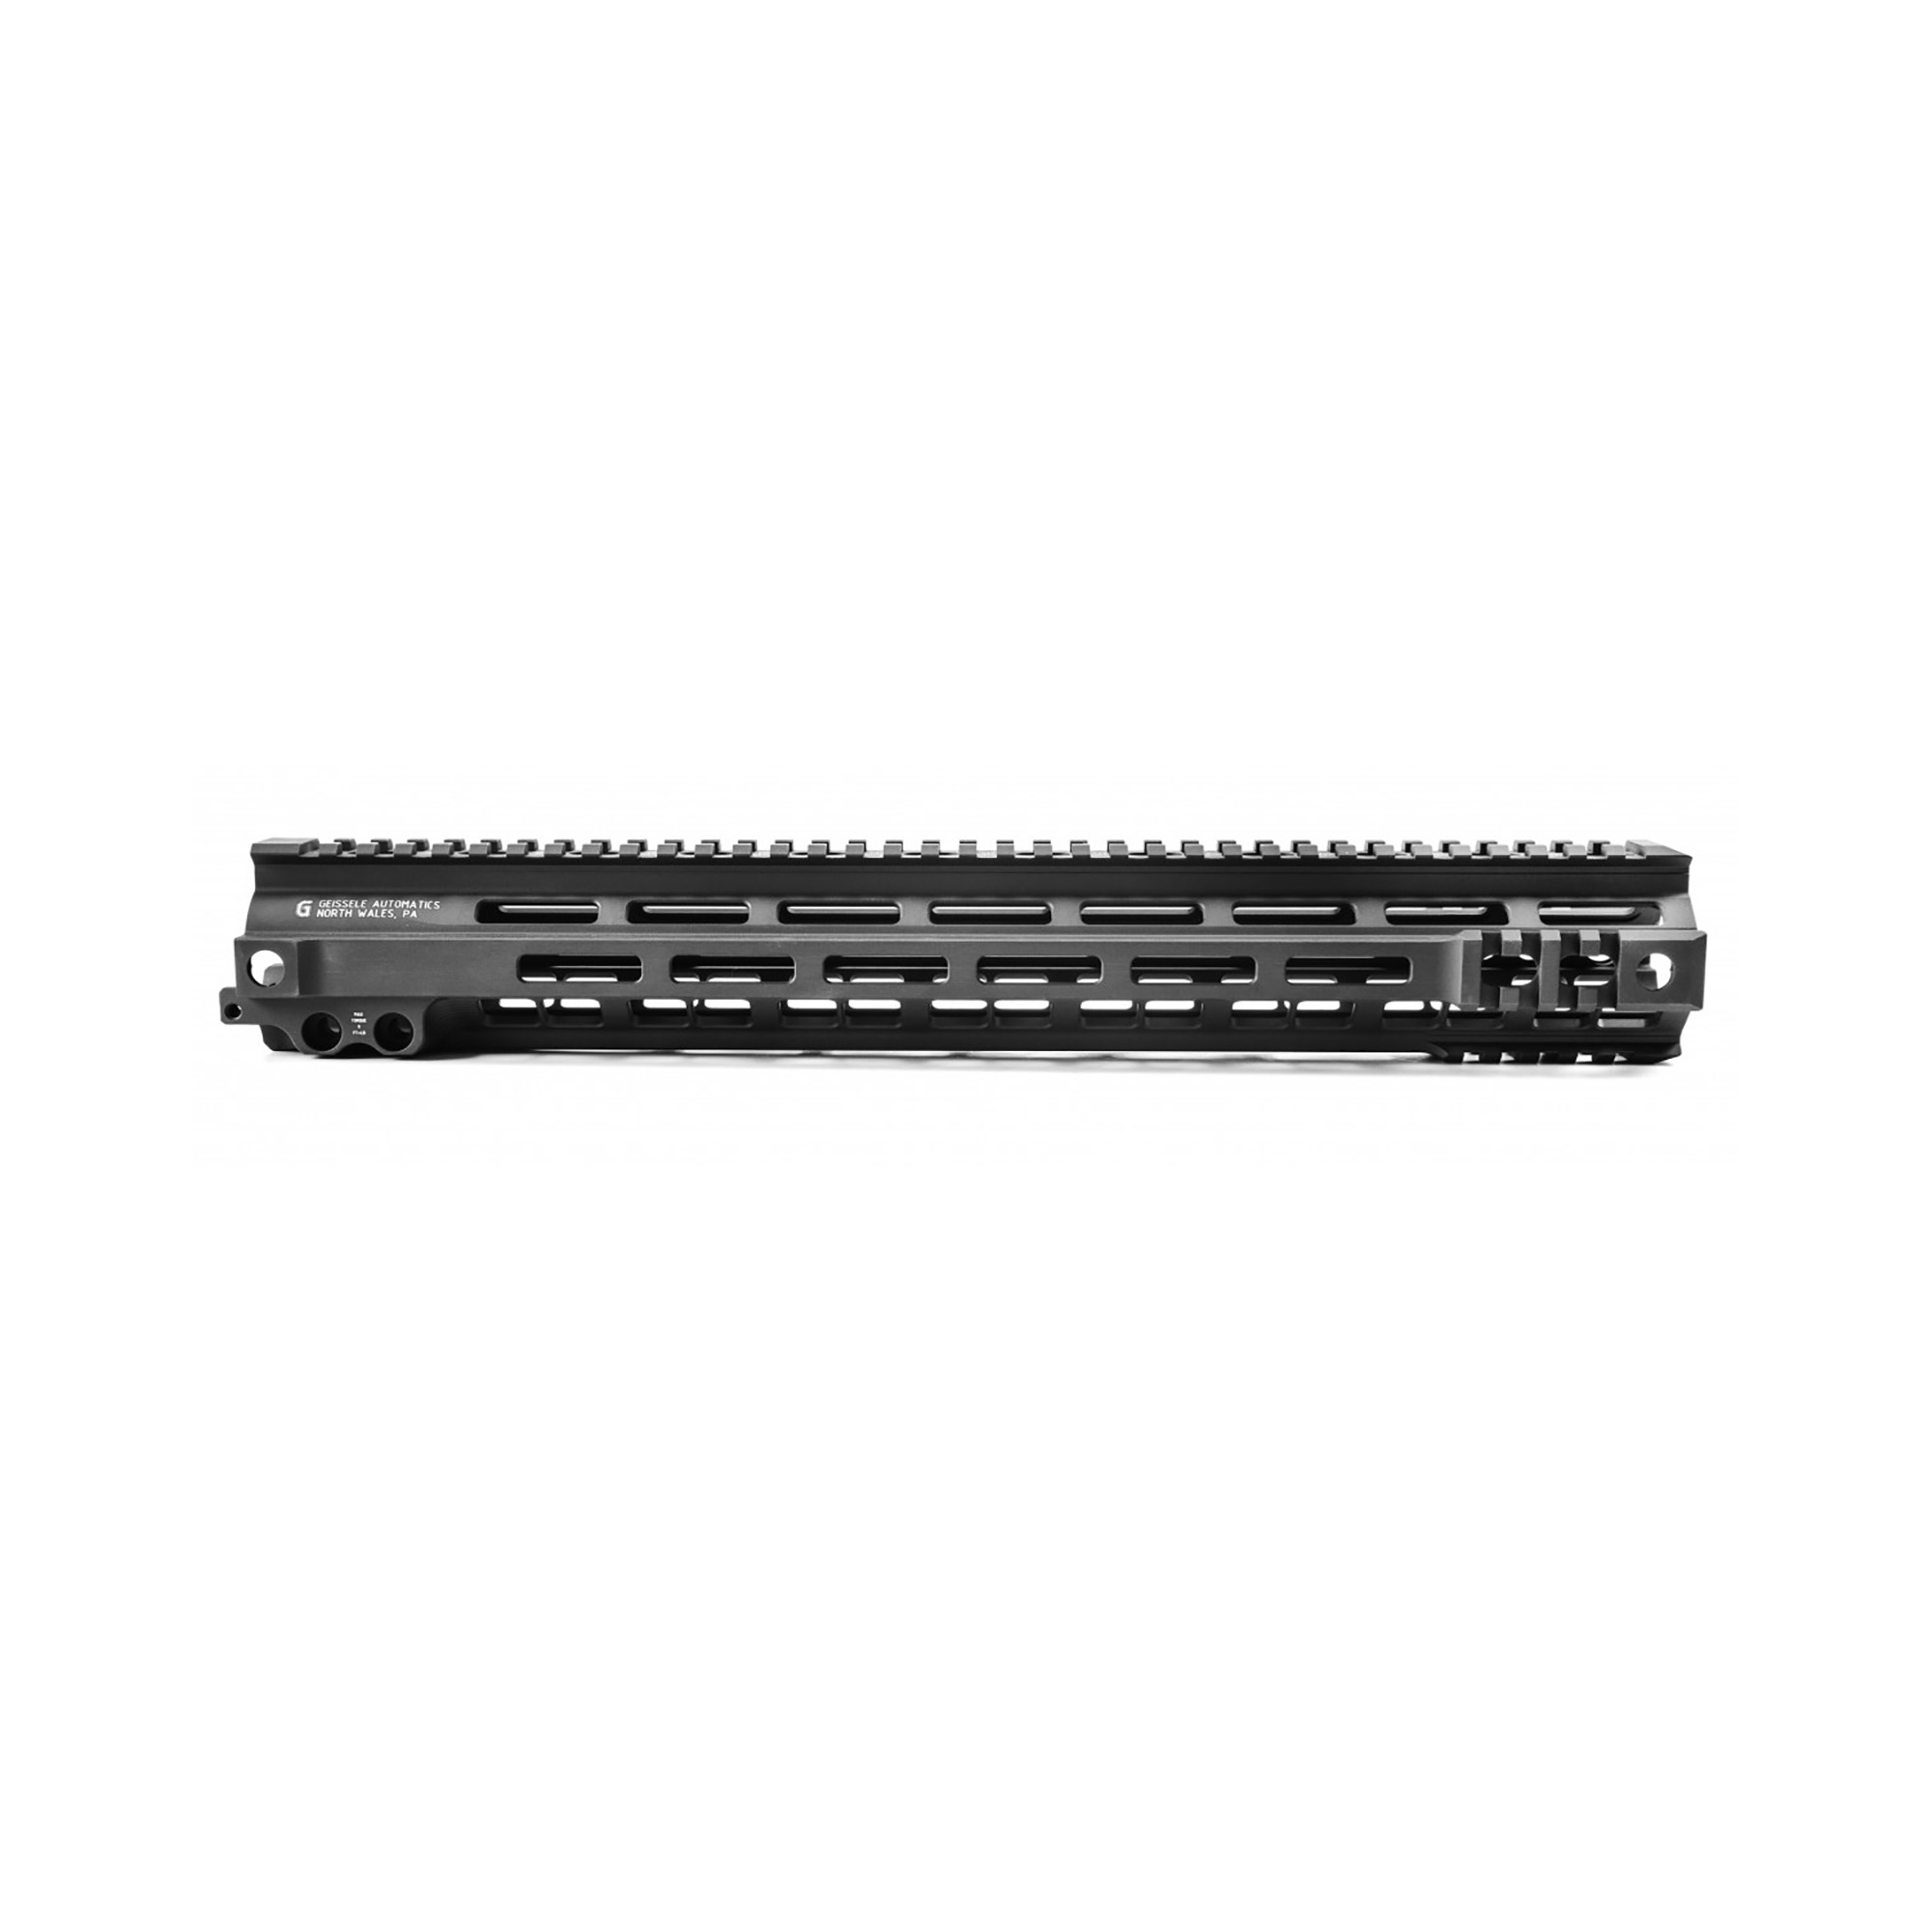 """The Super Modular 15"""" Rail (SMR) MK4 M-LOK is Geissele's ultra-lightweight M-LOK option. These rails are purpose-built and feature integrated M1913 picatinny rail sections at the fore of the rail in the 3"""" 6 and 9 o'clock positions. Maximum venting for heat dissipation also dramatically reduces the rail's overall weight"""" while maintaining its same strong and rigid platform. Utilizing Magpul's M-LOK technology at the 3"""" 6"""" and 9 o'clock positions"""" as well as the upper 45 quadrants. The SMR MK4 is both versatile and modular"""" allowing the user to tailor their platform to his or her unique needs. The SMR MK4 also features Geissele's proprietary 2.25"""" long barrel nut. This increases the surface contact where the rail interfaces with the receiver and creates a platform that can be trusted to be straight and true the entire length of the free float rail. This increases accuracy and zero repeatability during disassembly and reassembly when performing maintenance."""